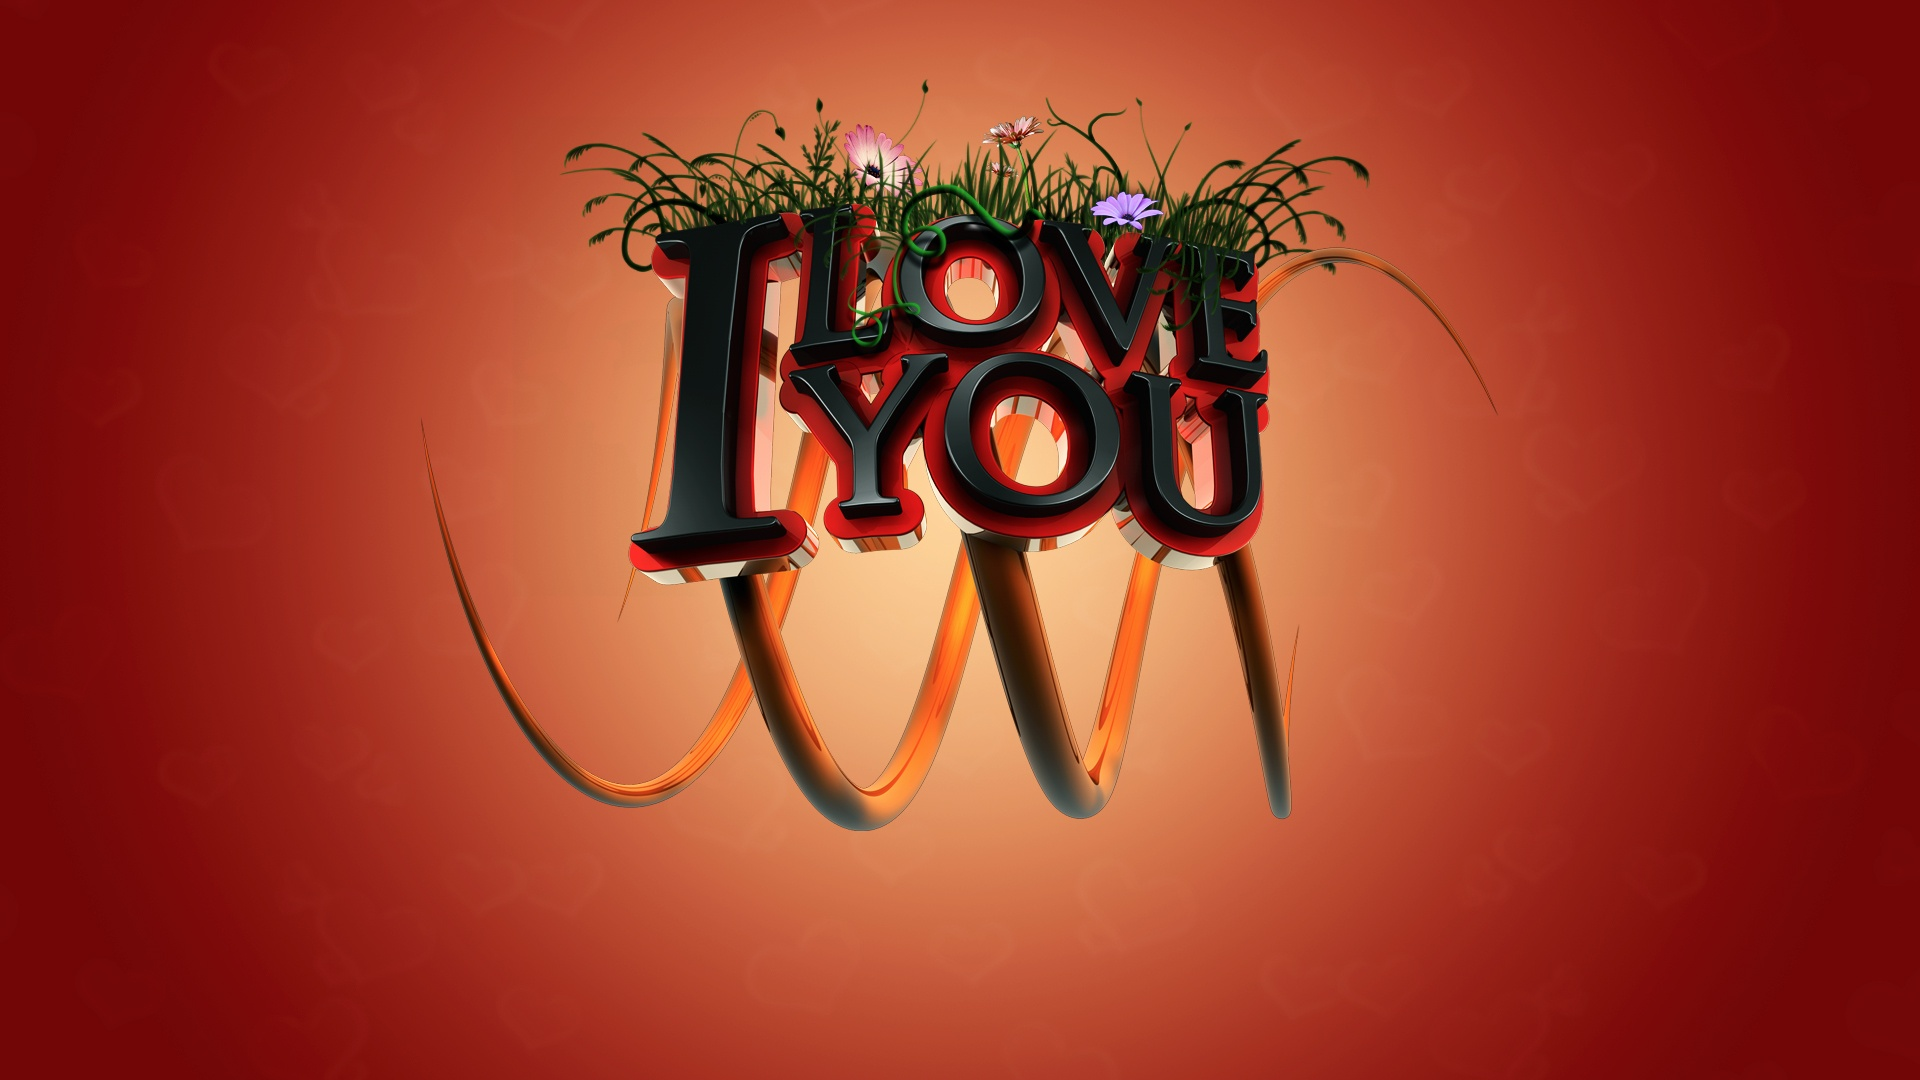 I Love You Wallpaper For Pc : 1920x1080 I love you 3D desktop Pc and Mac wallpaper